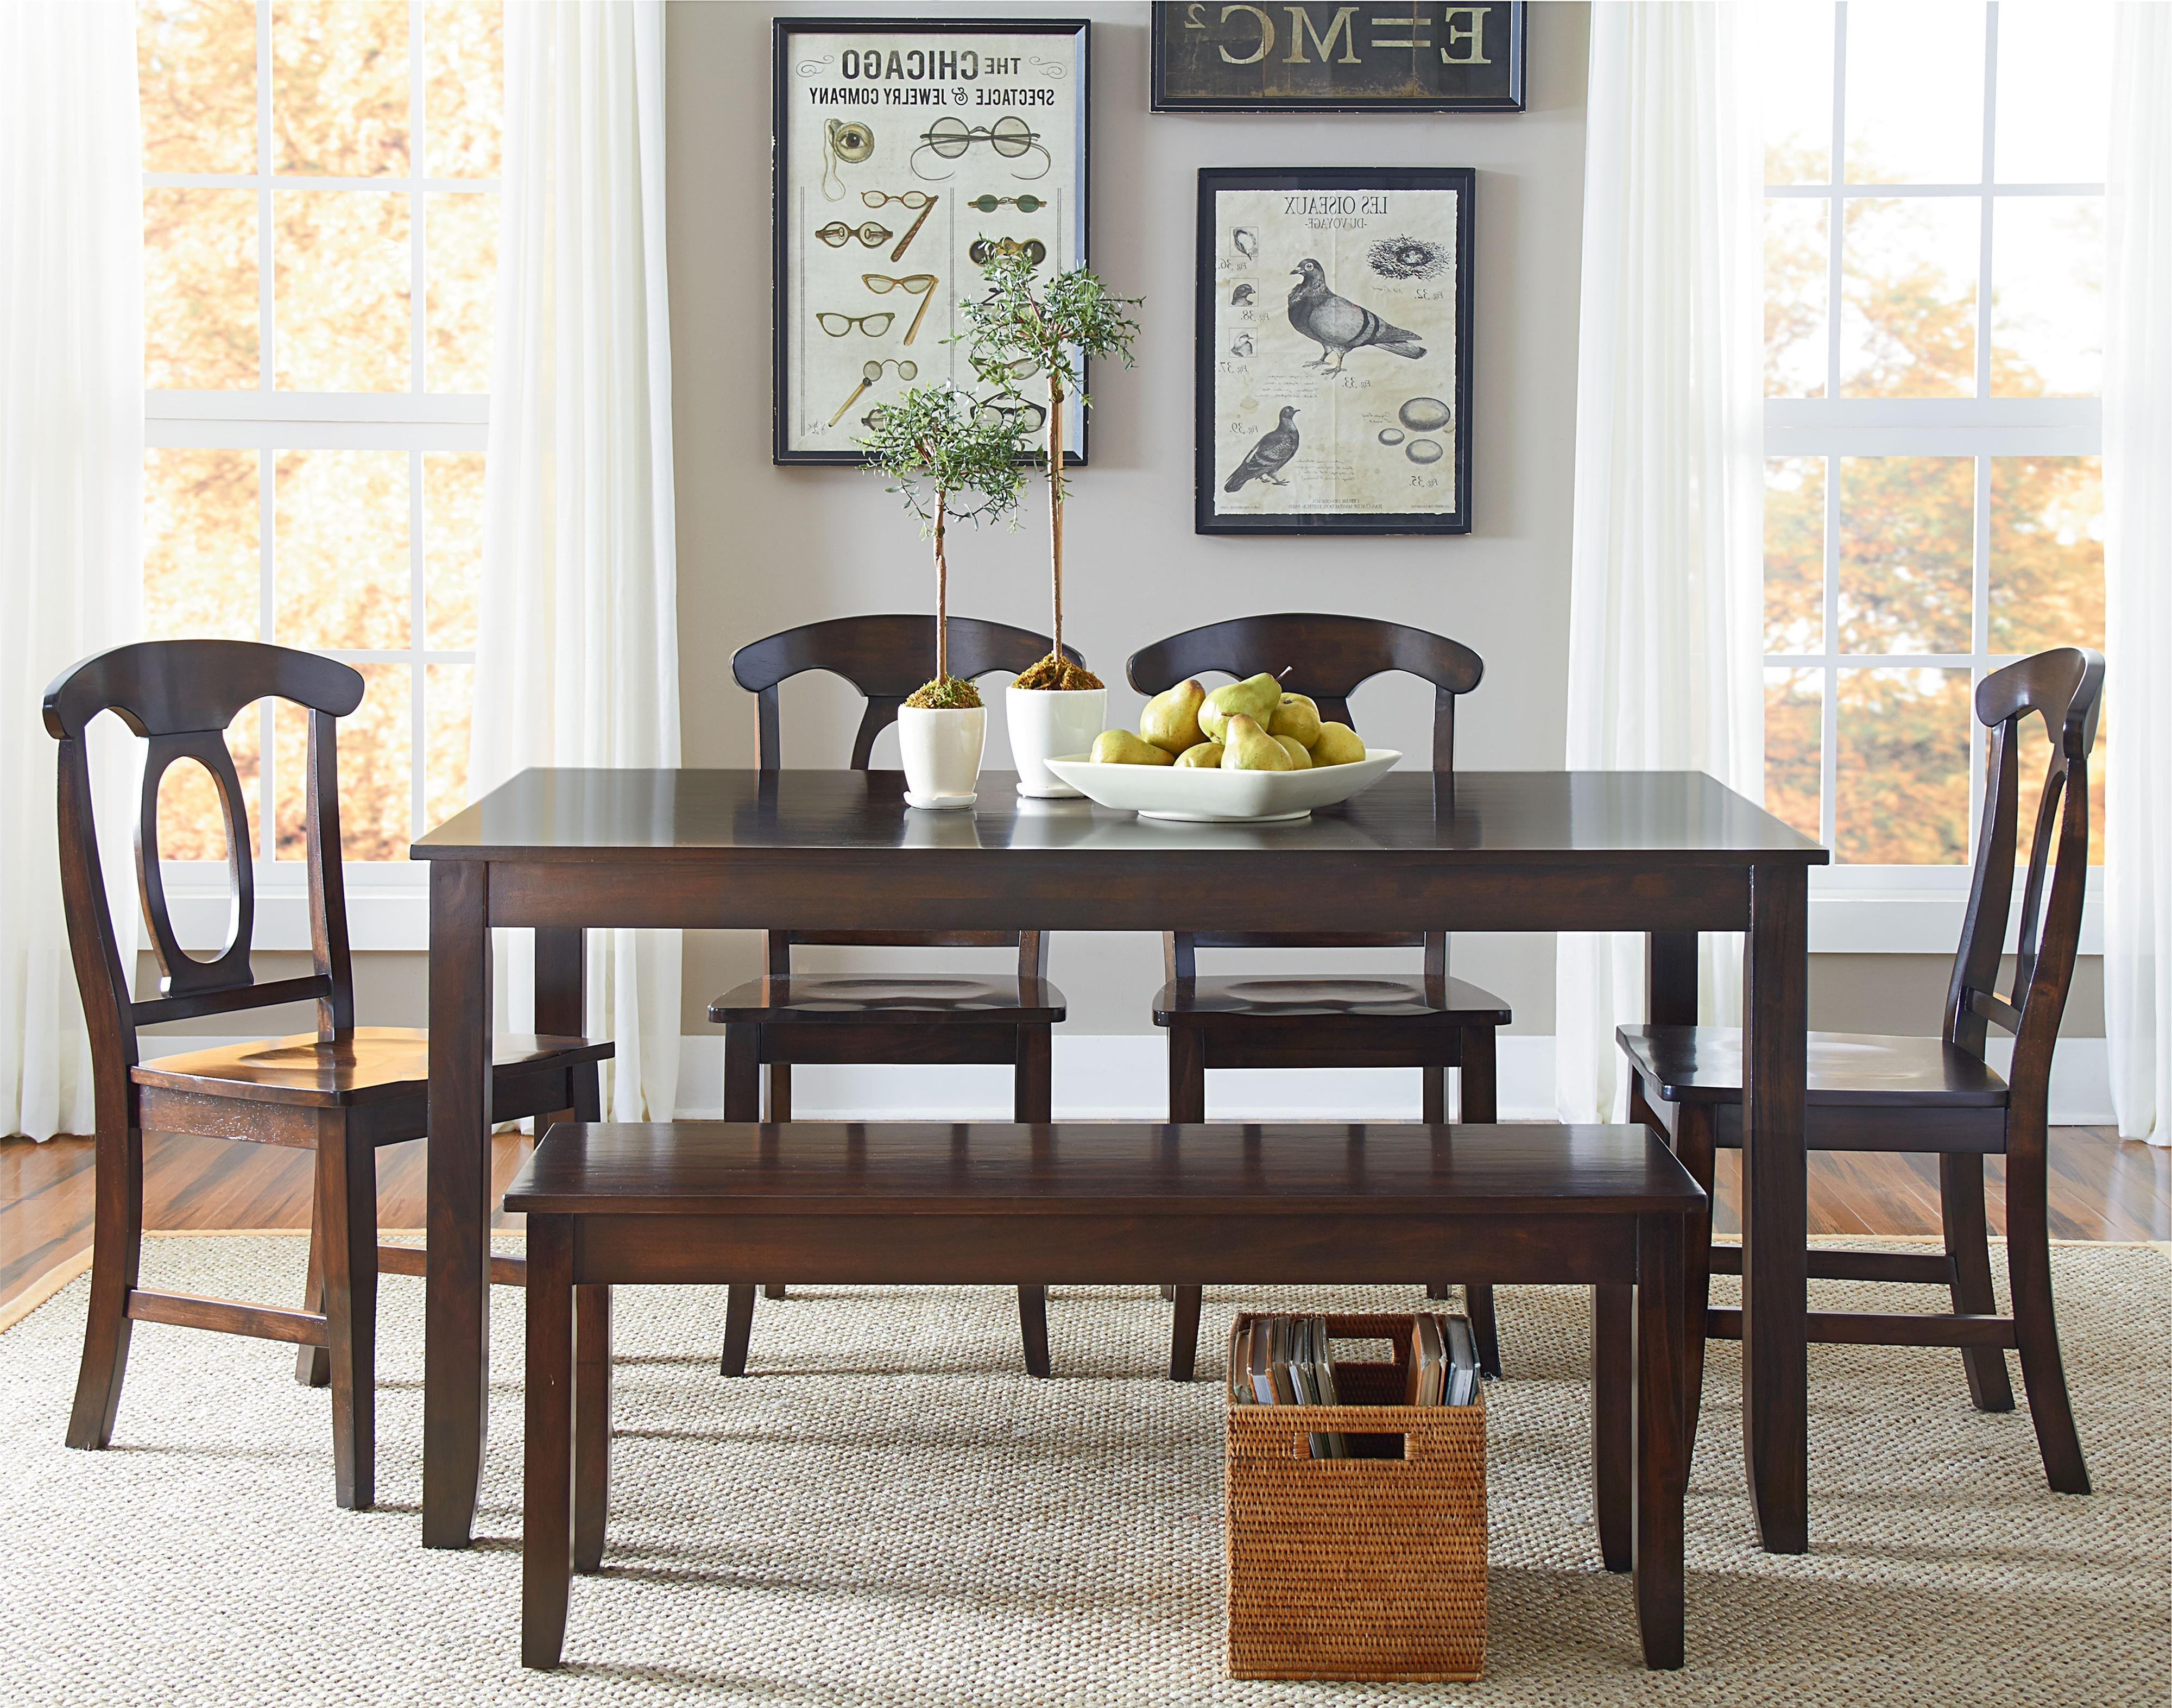 Sofa Chairs With Dining Table Inside Newest Standard Furniture Larkin 6 Piece Dining Table Set With Open Oval (View 15 of 20)